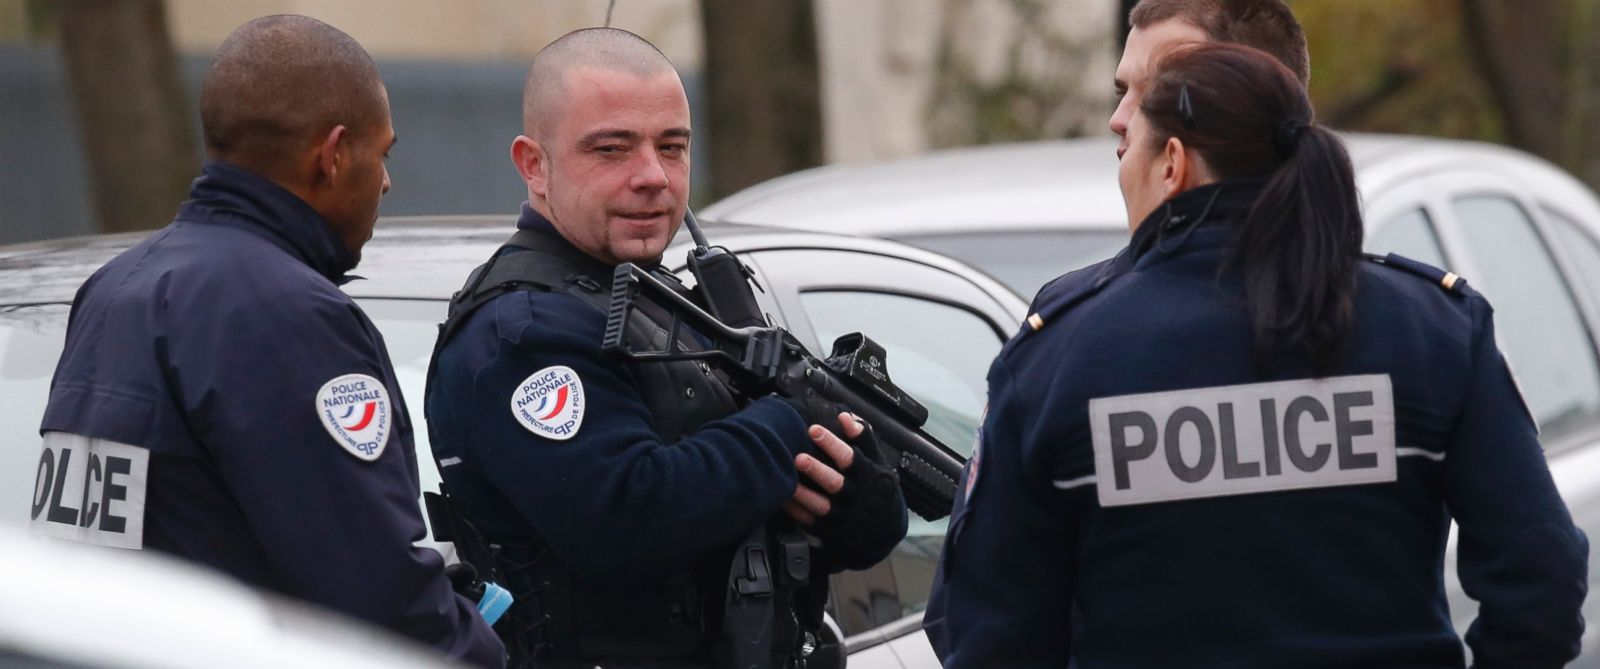 PHOTO: Police officers patrol near a pre-school, after a masked assailant with a box-cutter and scissors attacked a teacher, Dec.14, 2015 in Paris suburb Aubervilliers.